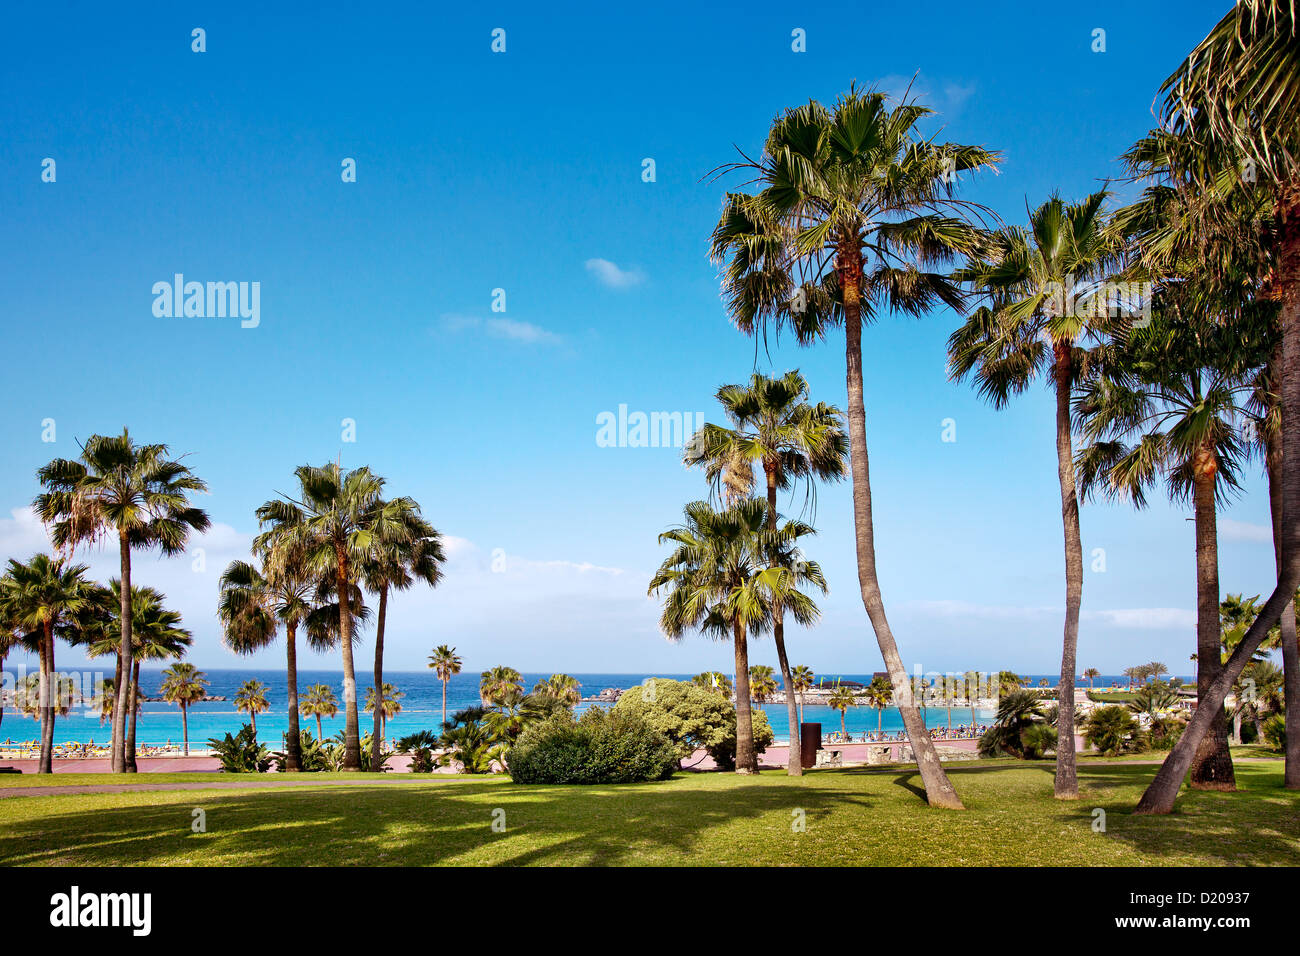 View of palm trees and ocean, Playa Amadores, Puerto Rico, Gran Canaria, Canary Islands, Spain, Europe - Stock Image